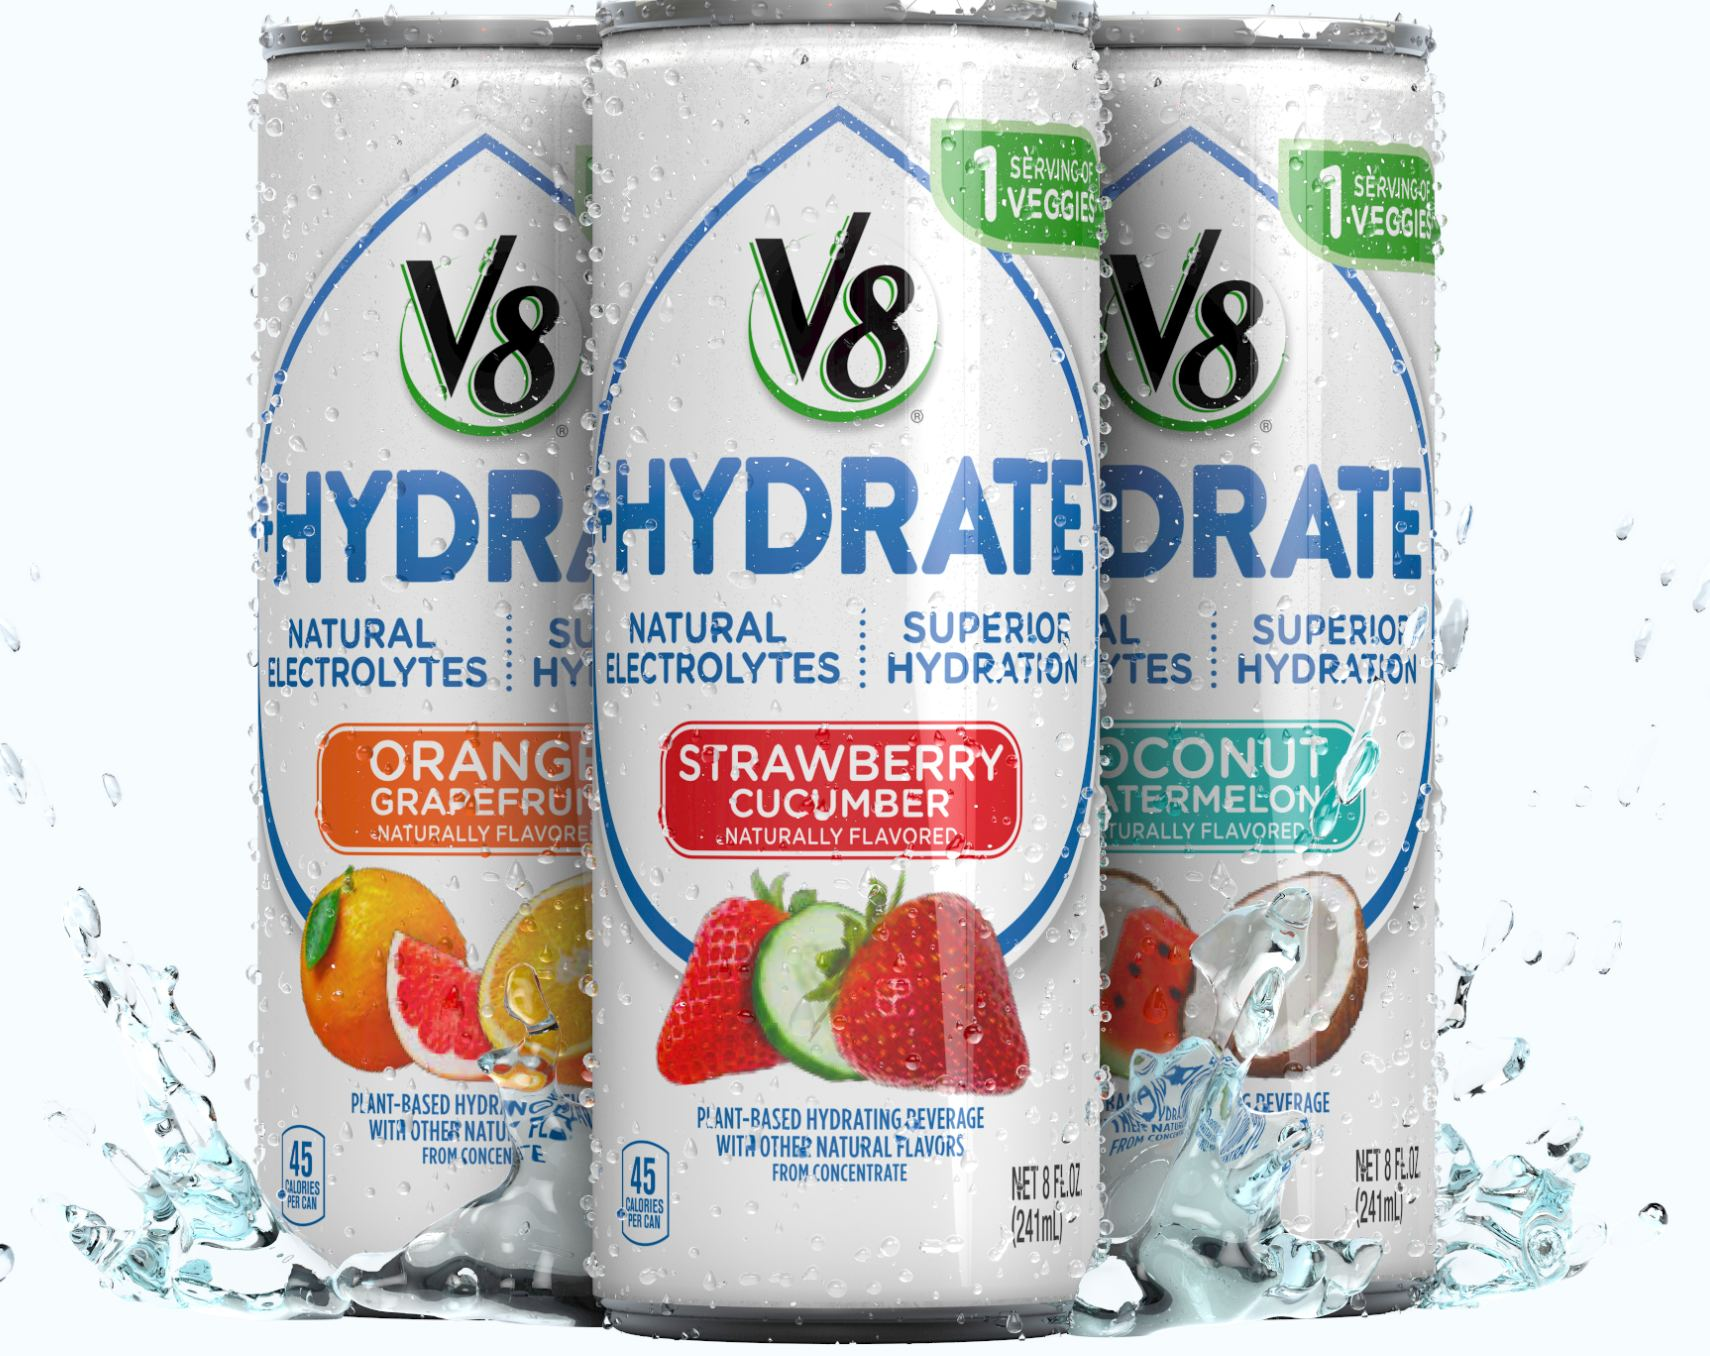 V8 Hydrate drink from Campbells